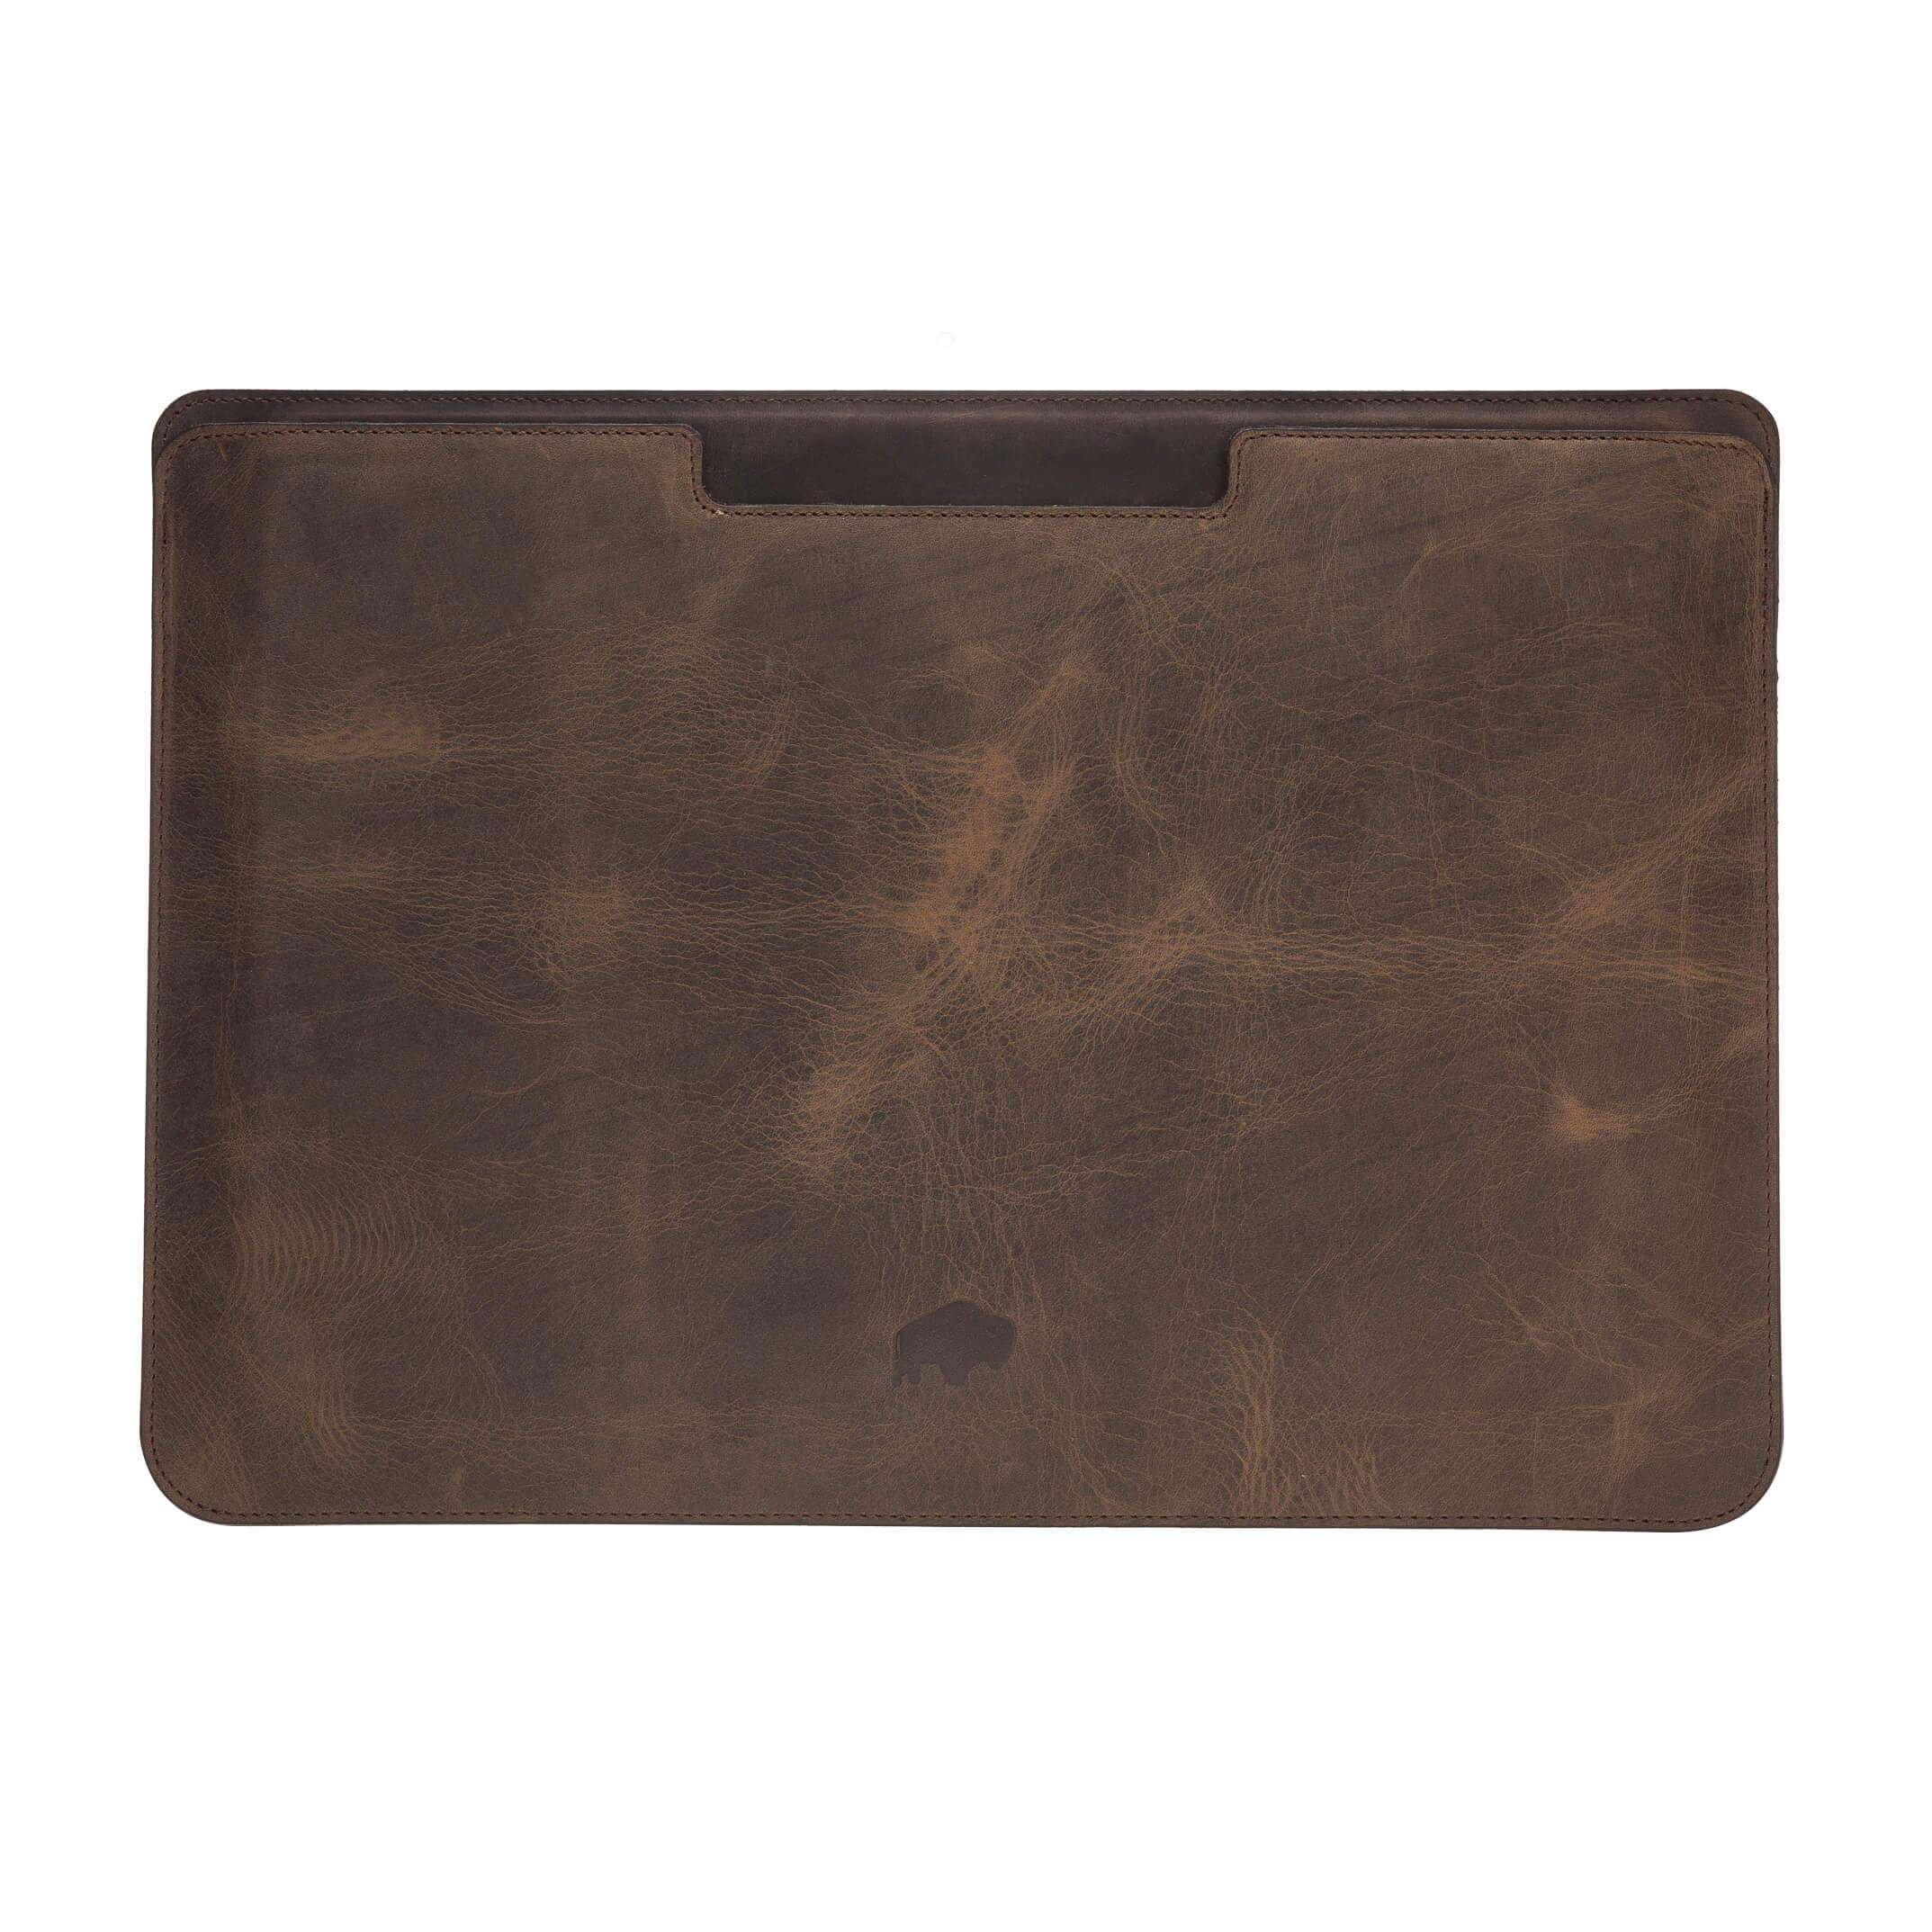 Burkley Case Compatible with MacBook Pro 15'' Burkley Leather Sleeve, Handcrafted and Full Grain Leather for MacBook Pro 15'' (Distressed Antique Coffee)